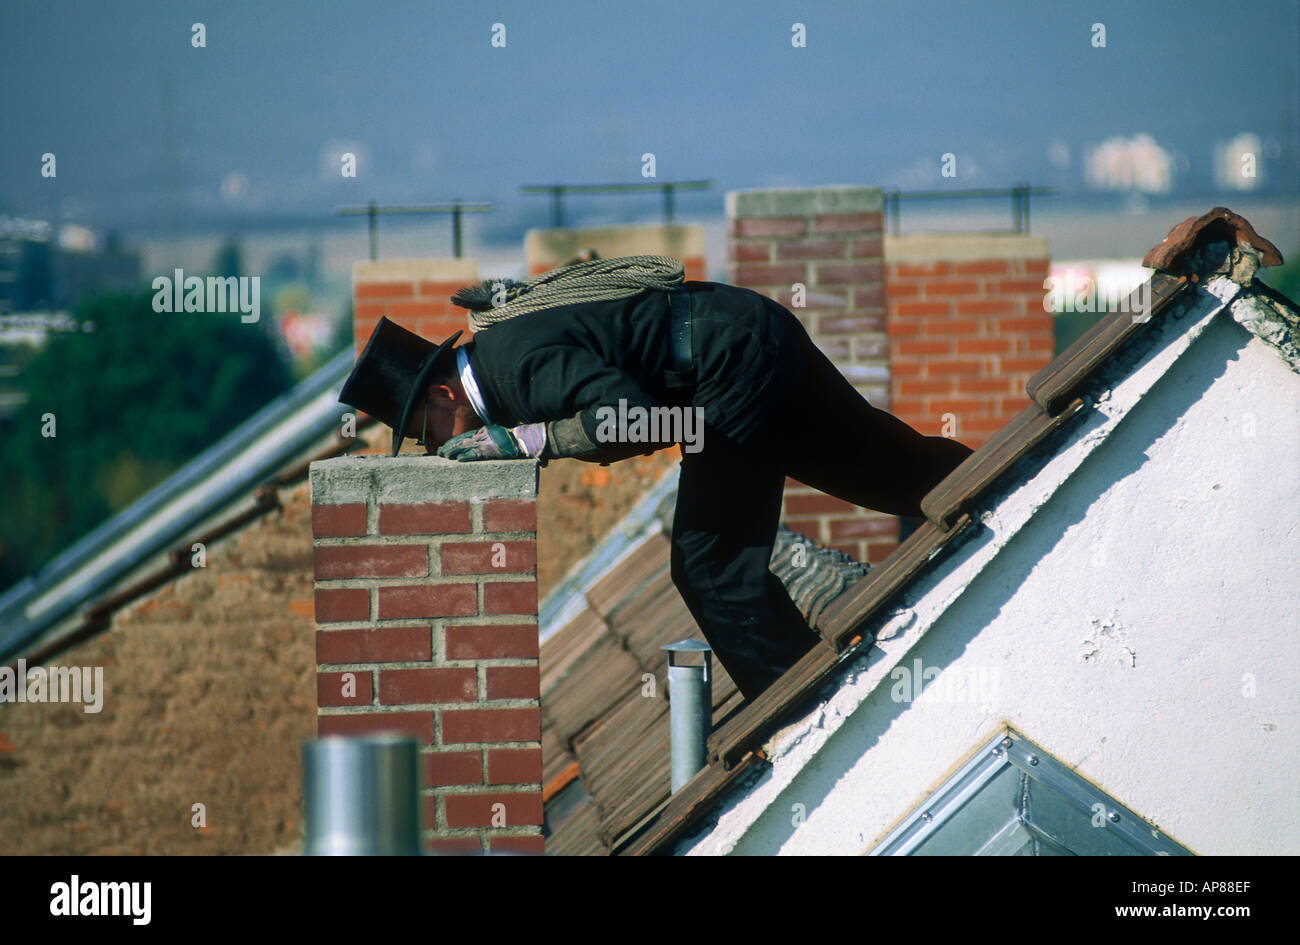 Roof Chimney Tile Roof Ridge Stock Photos Amp Roof Chimney